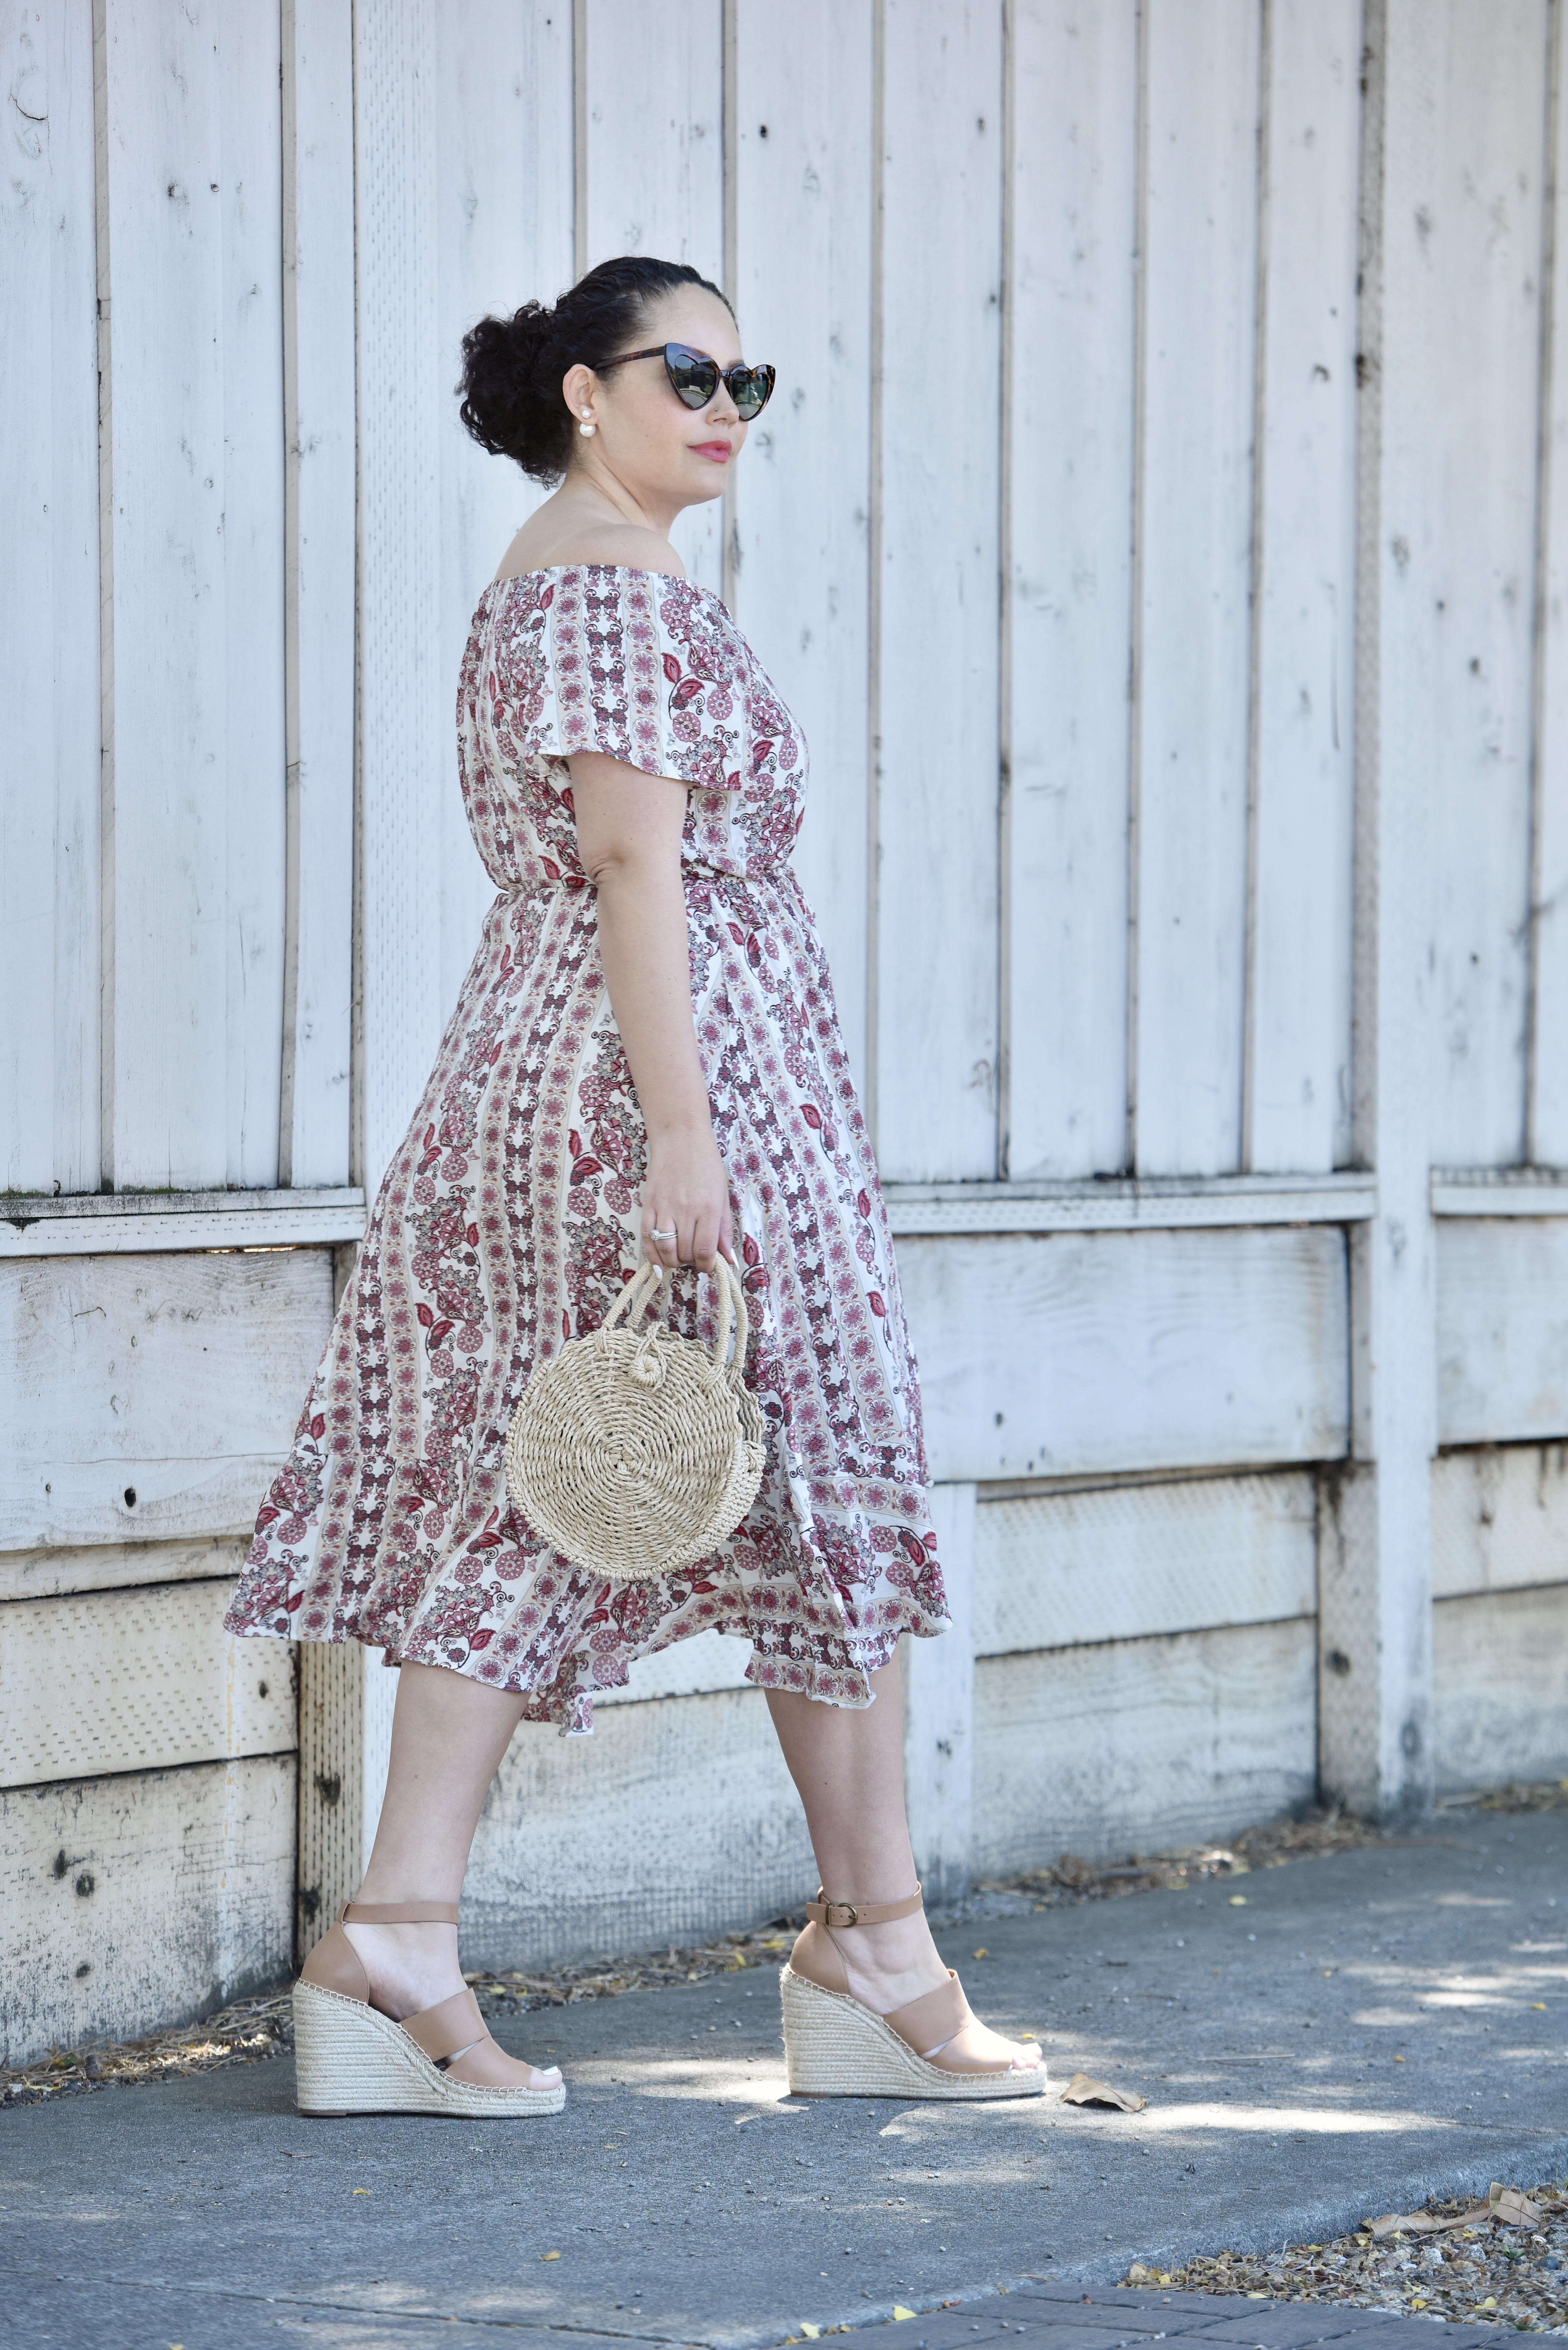 3 Espadrille Styles to Wear Right Now via @GirlWithCurves #shoes #summer